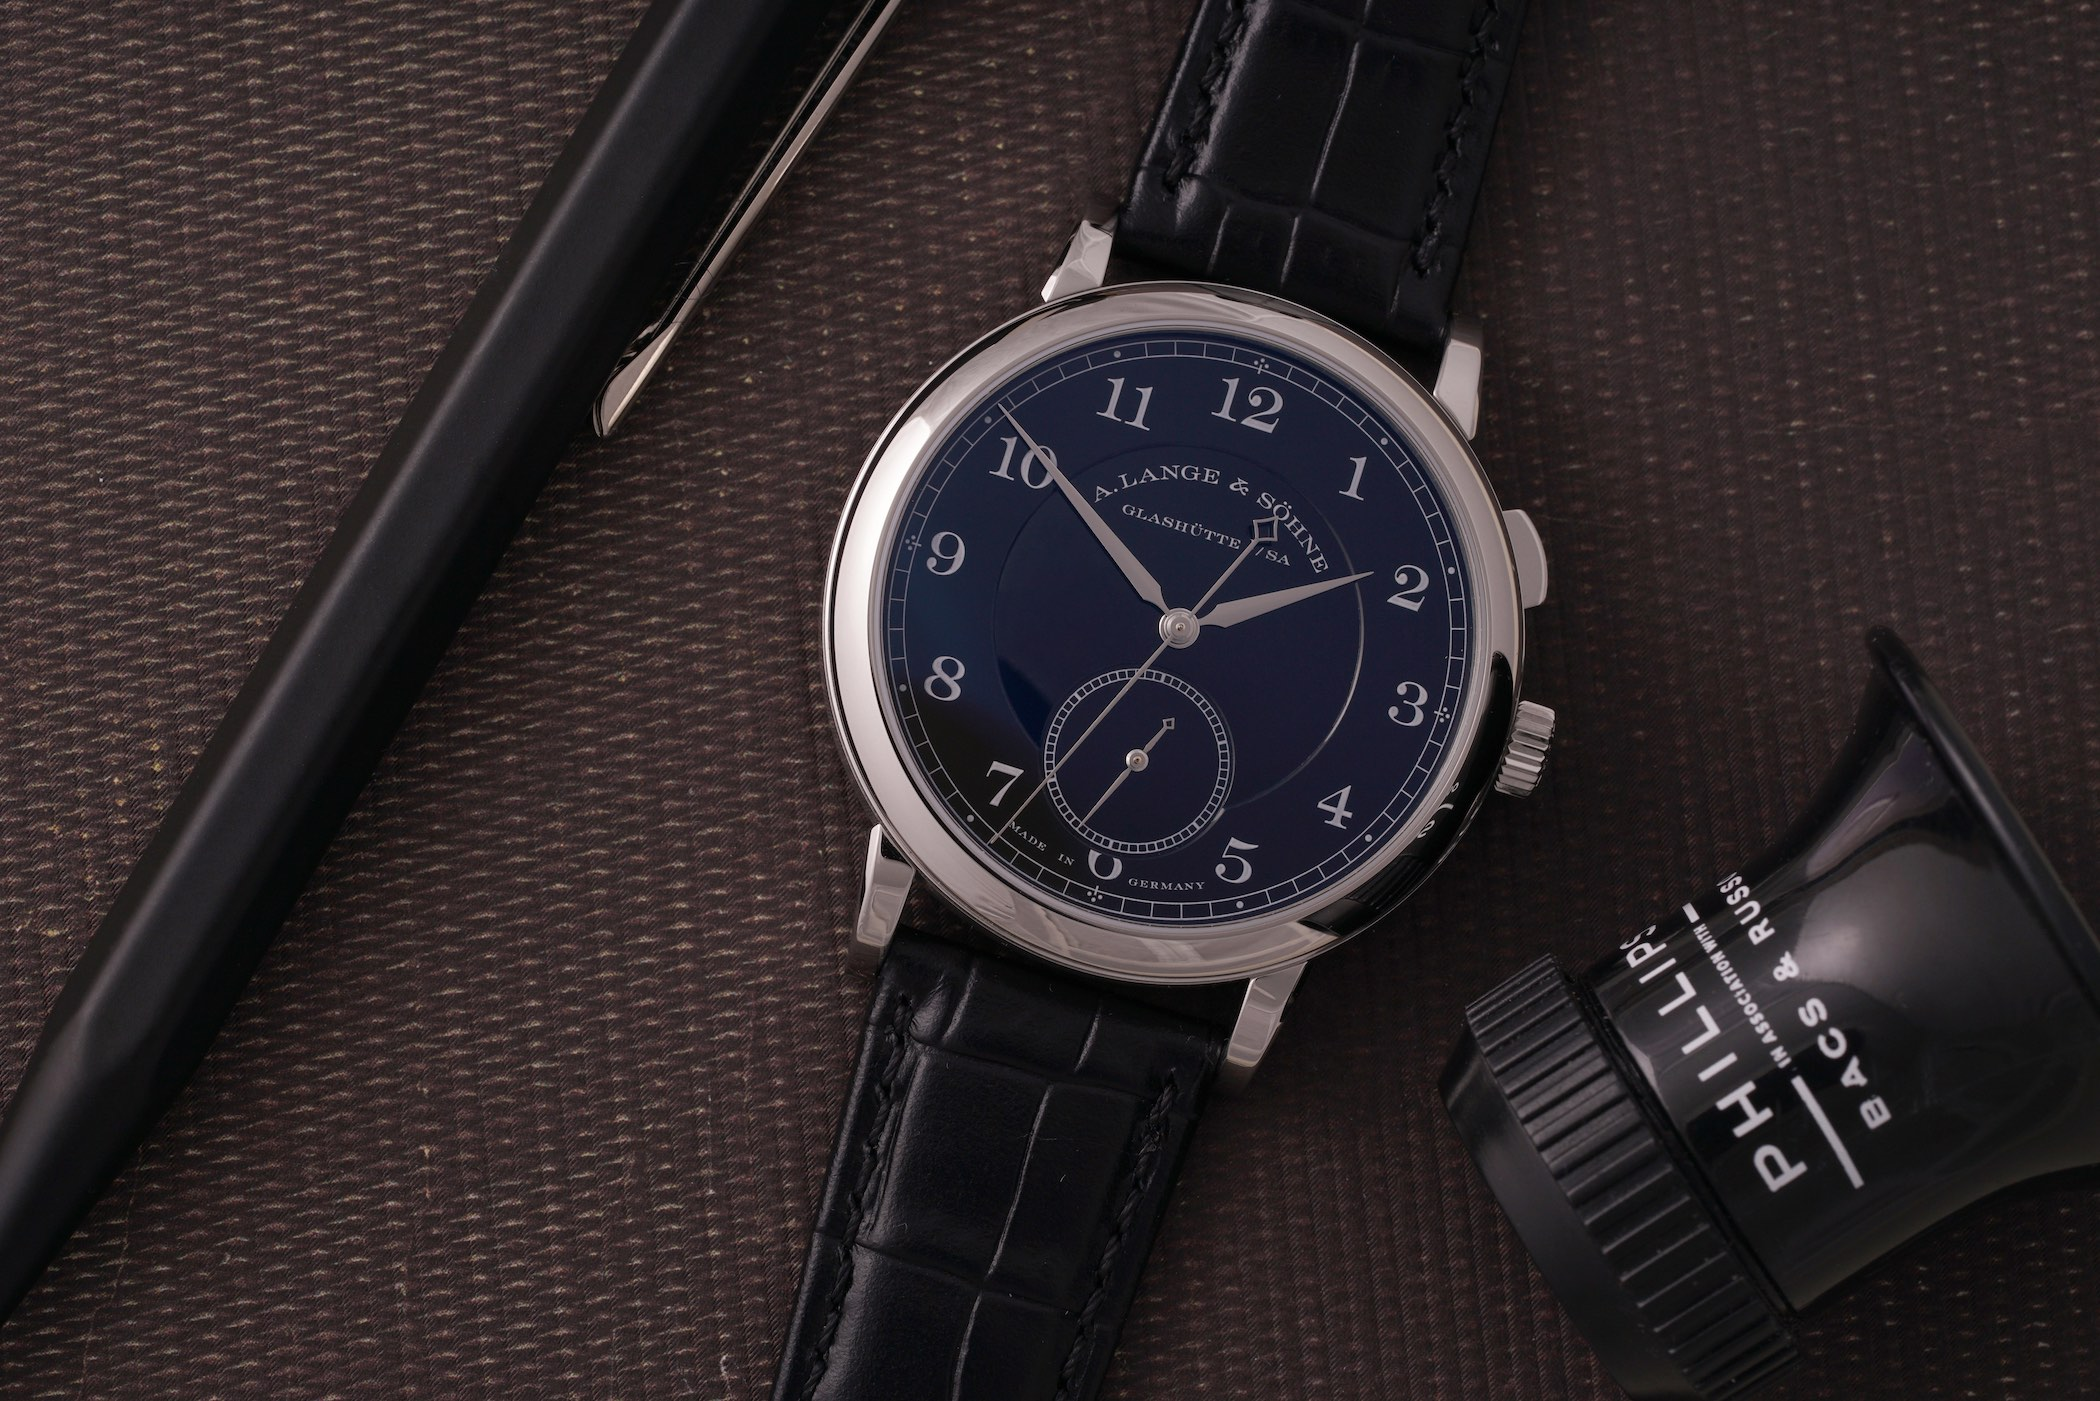 Phillips Watches to Auction the Unique A Lange & Söhne 1815 Homage